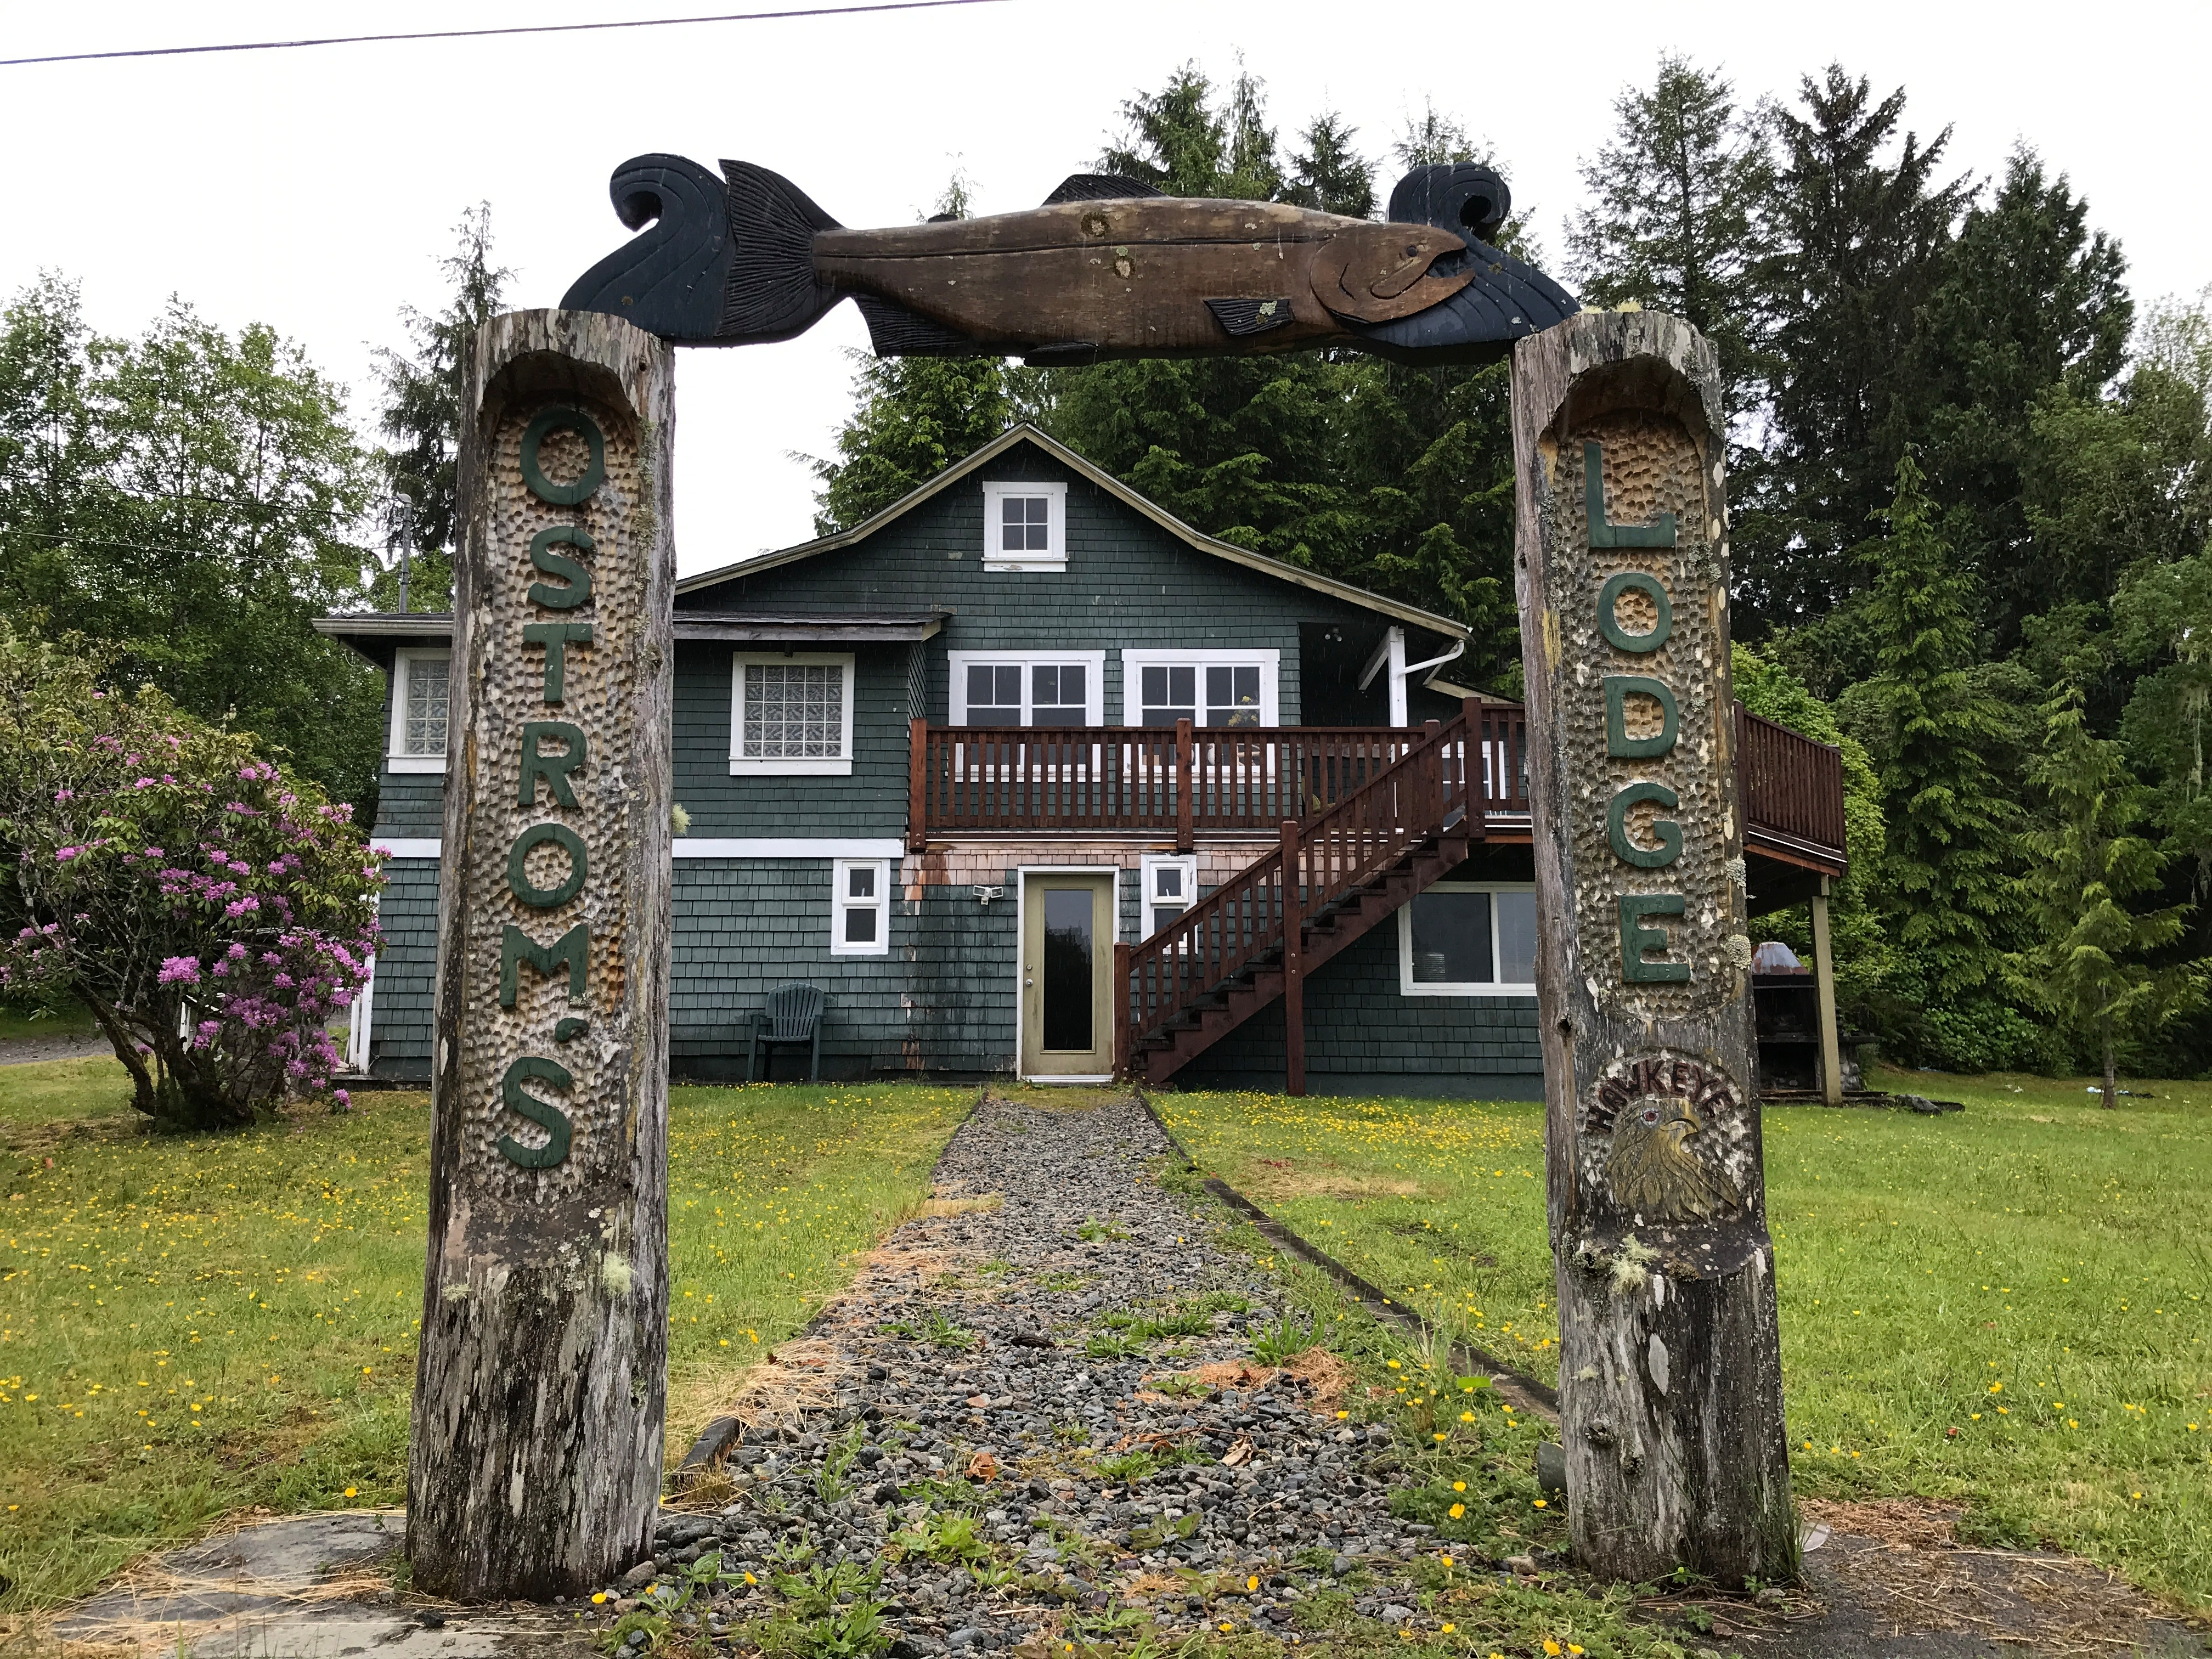 Ostrom's Lodge is one of 11 tourism properties purchased in 2016 by the Huu-ay-aht. (Megan Thomas/CBC)